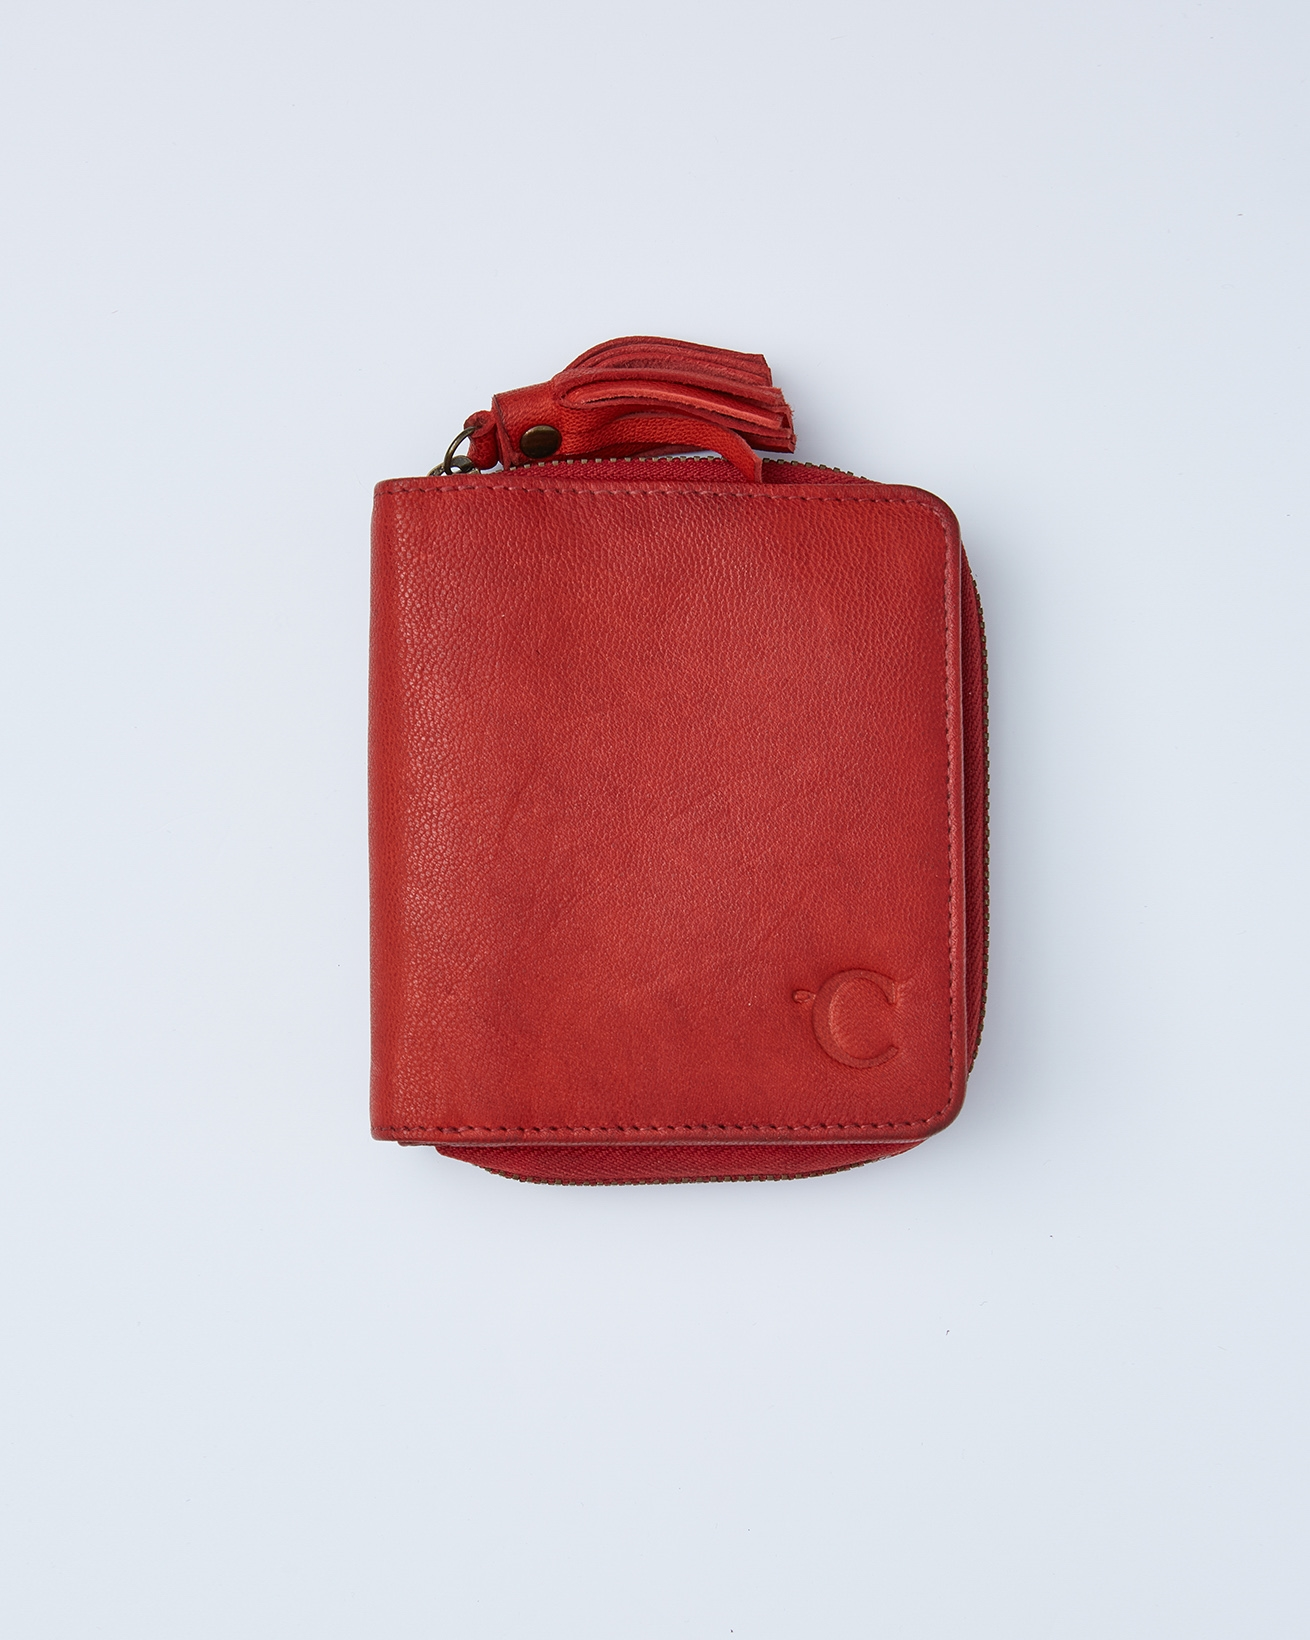 Veg Tan Lather Square Purse - One/Size - Red - 2416